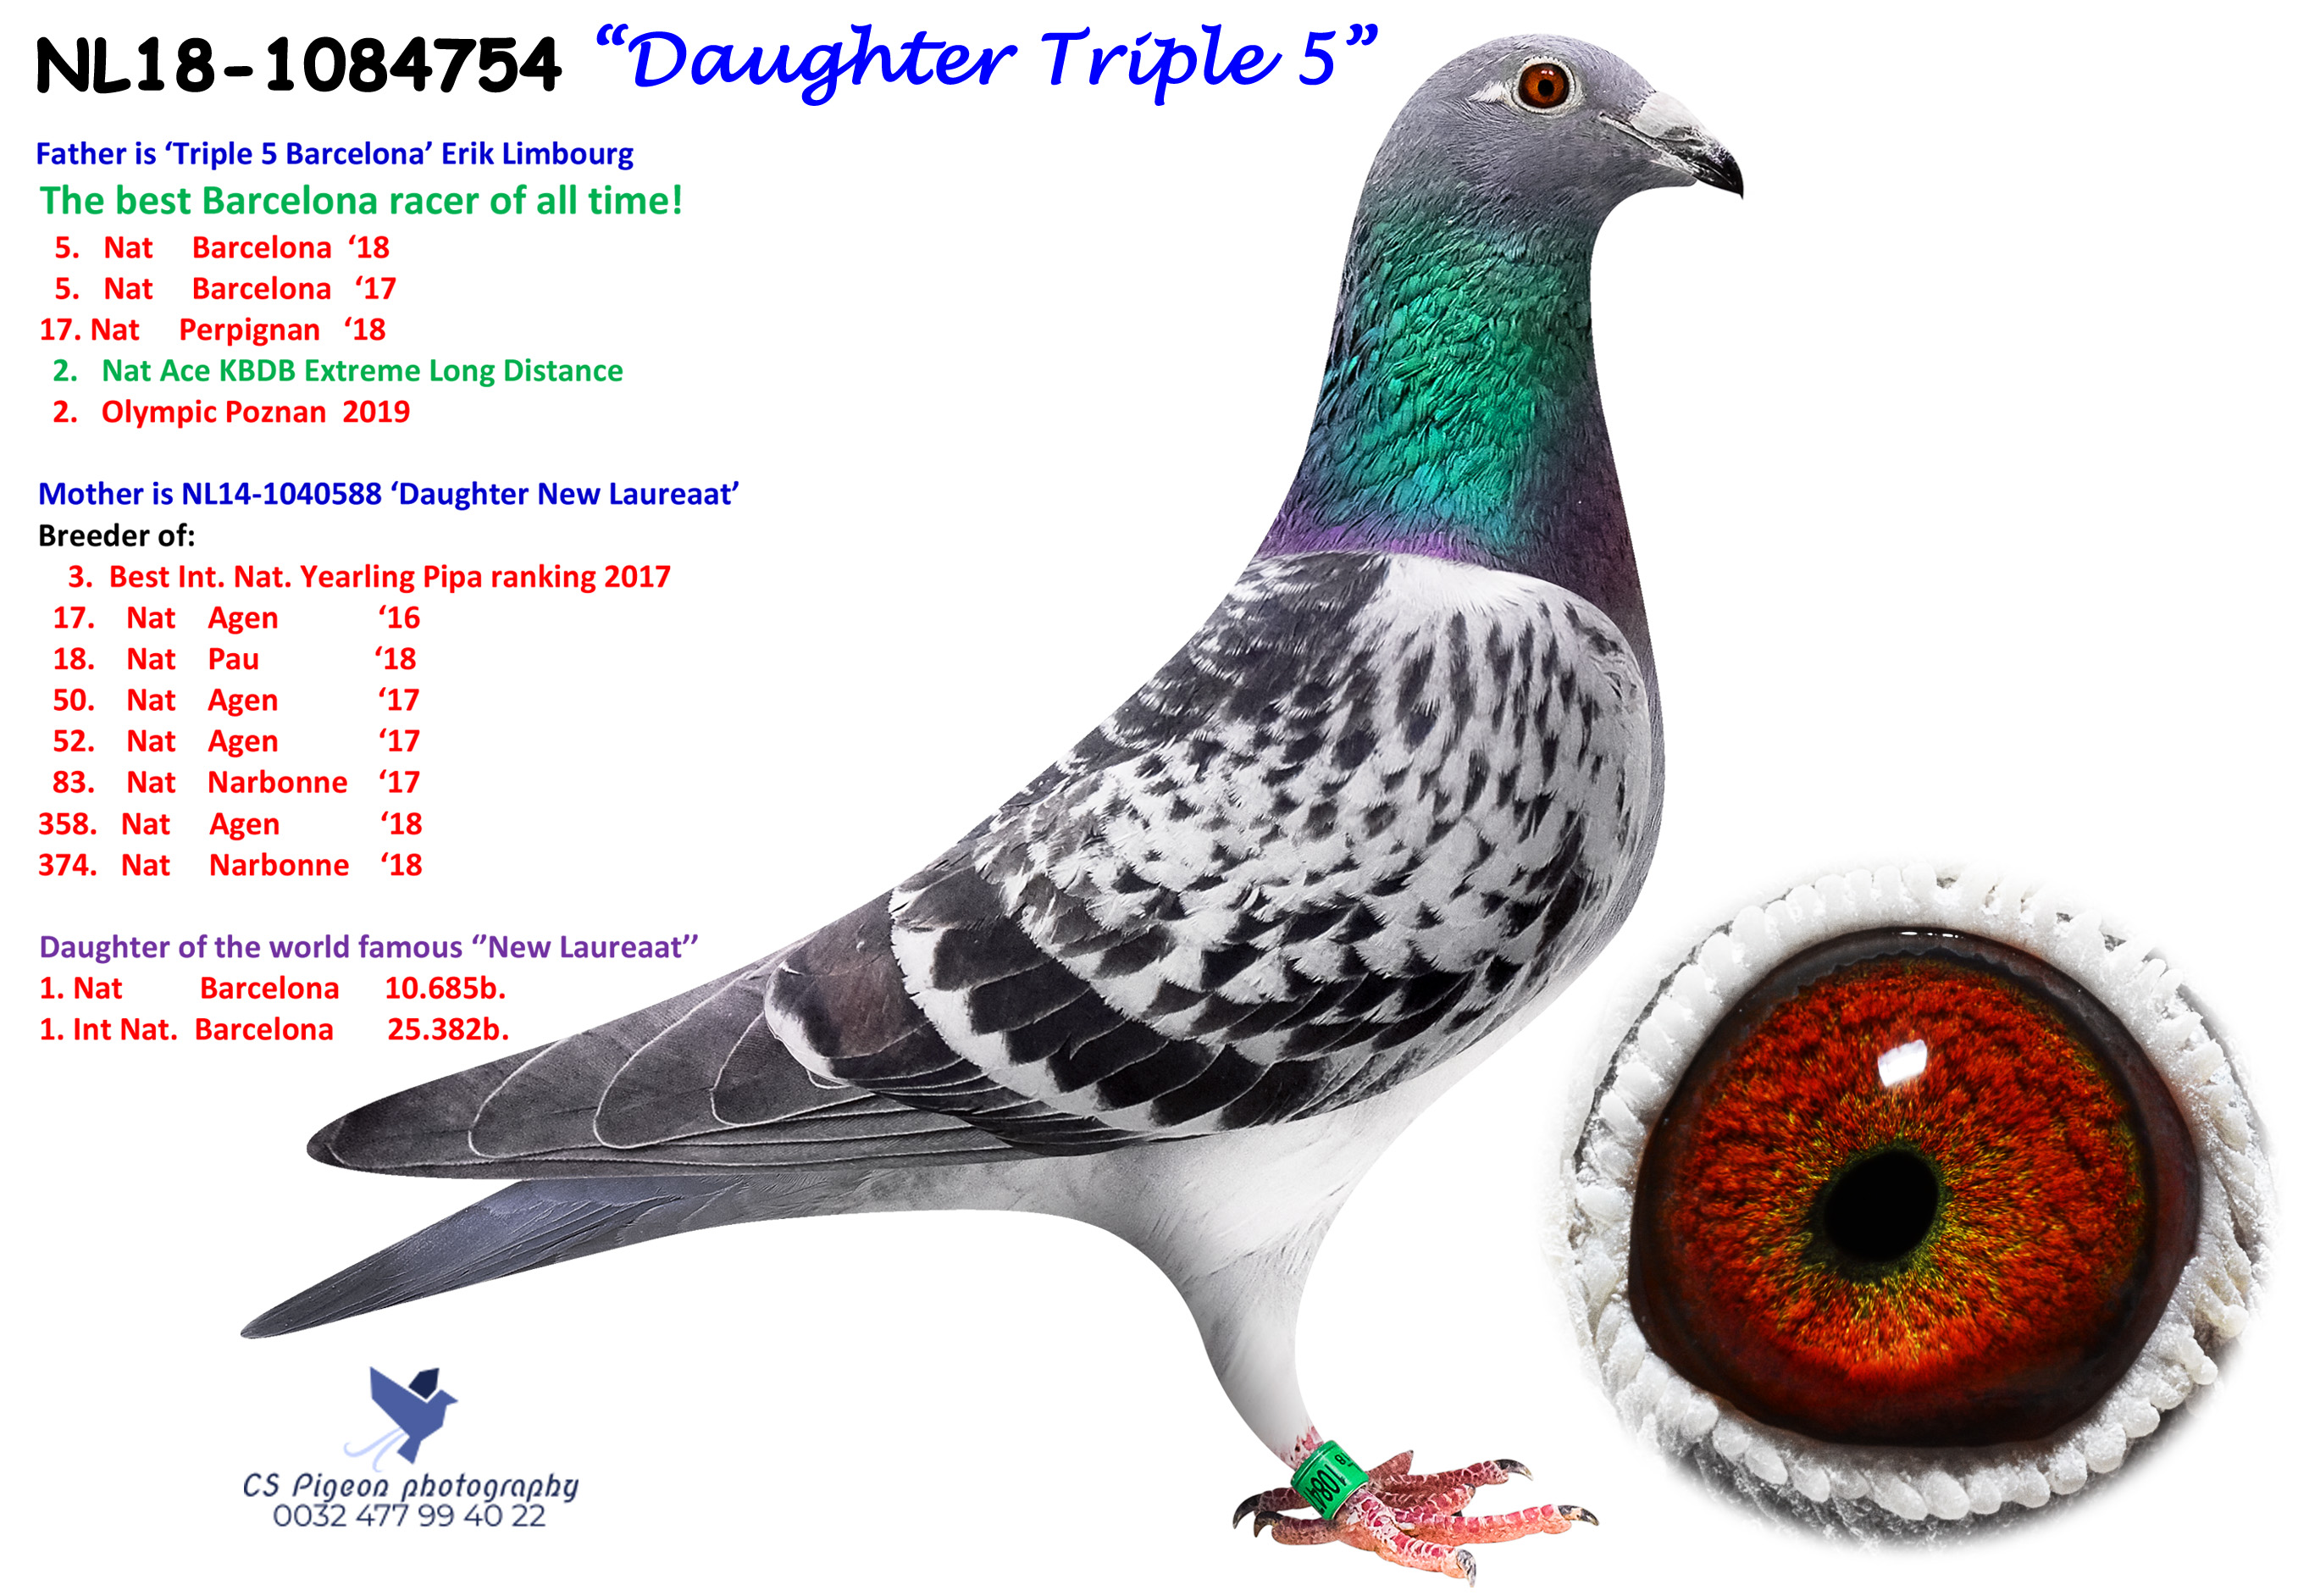 Daughter Triple 5